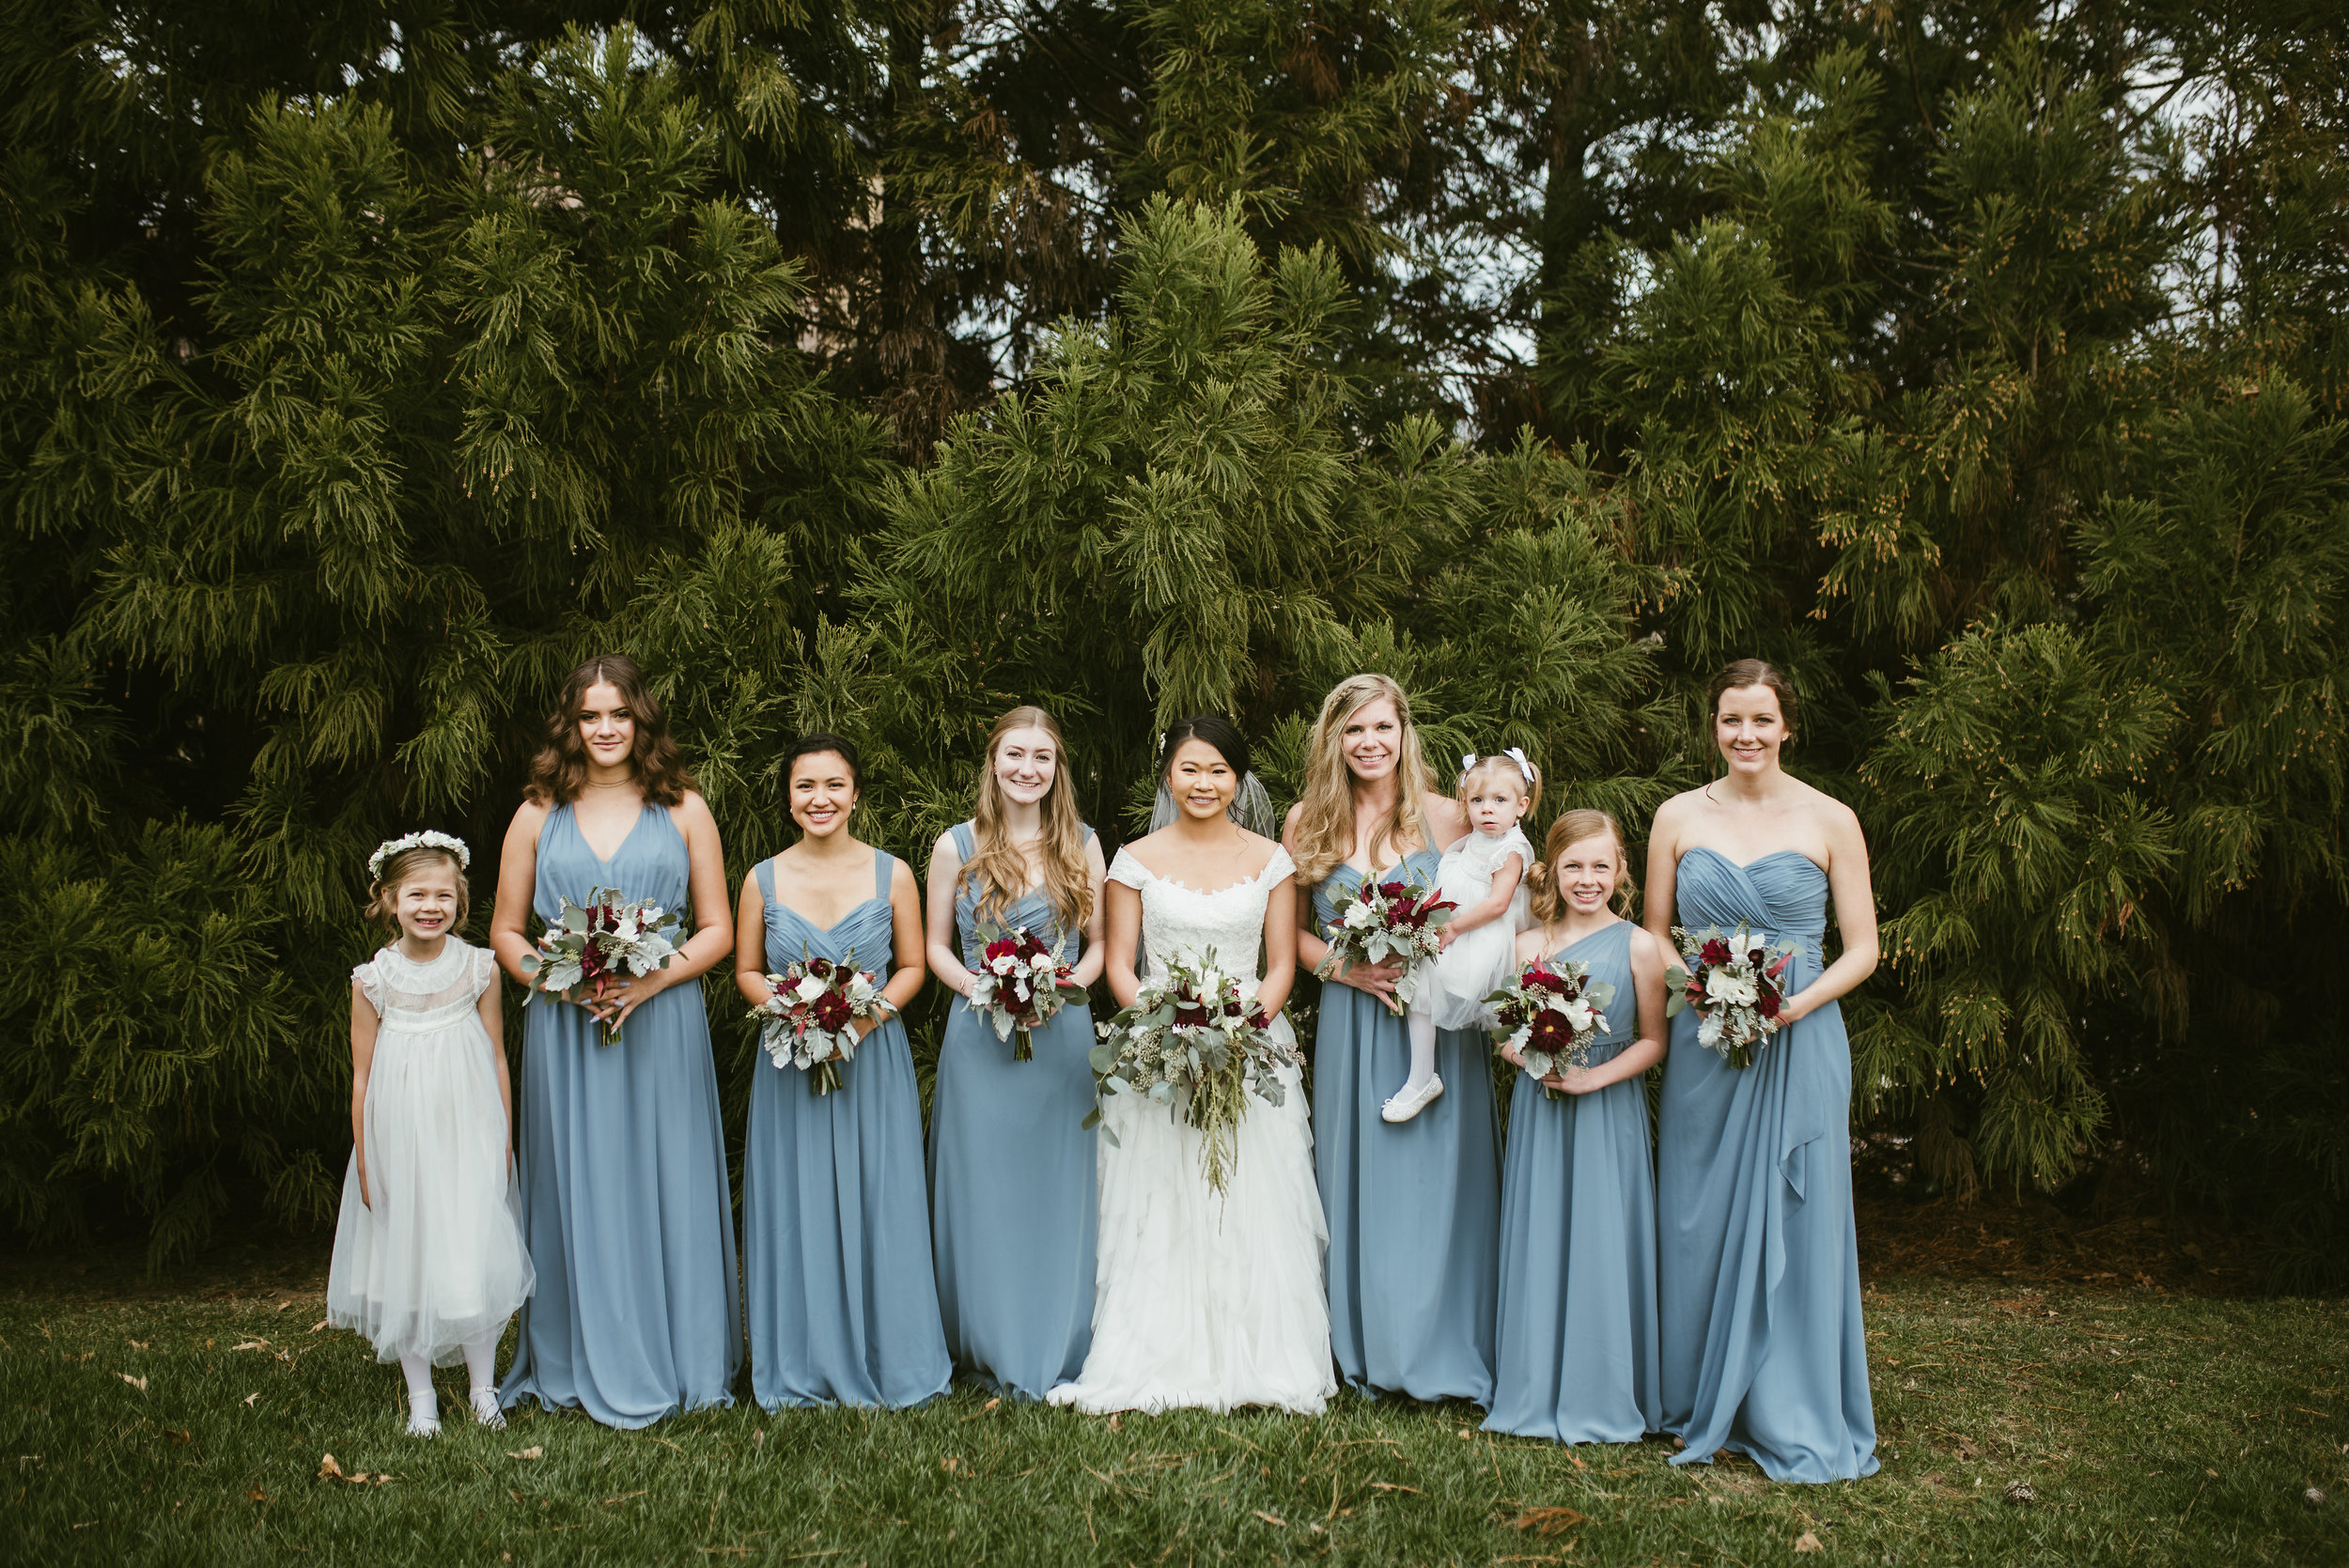 Highgrove Estate Wedding - Raleigh Wedding Photographer - North Carolina Wedding Photographer